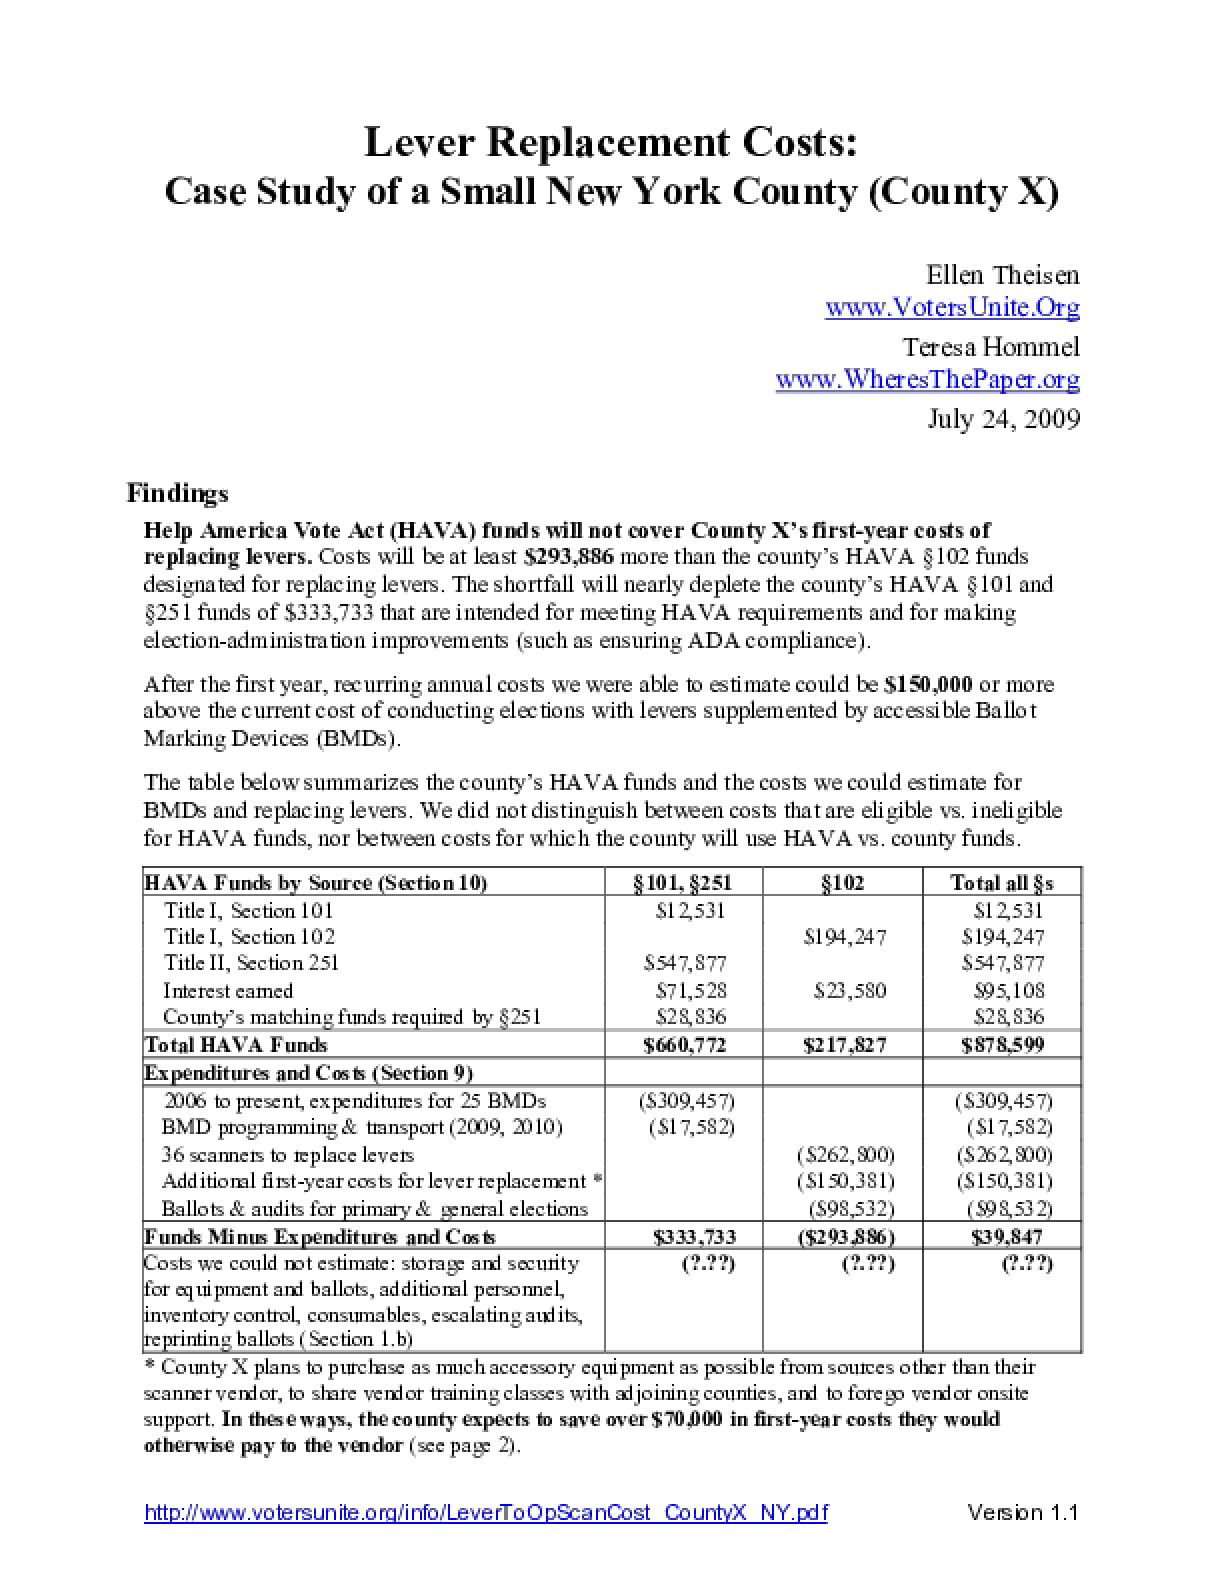 Lever Replacement Costs: Case Study of a Small New York County